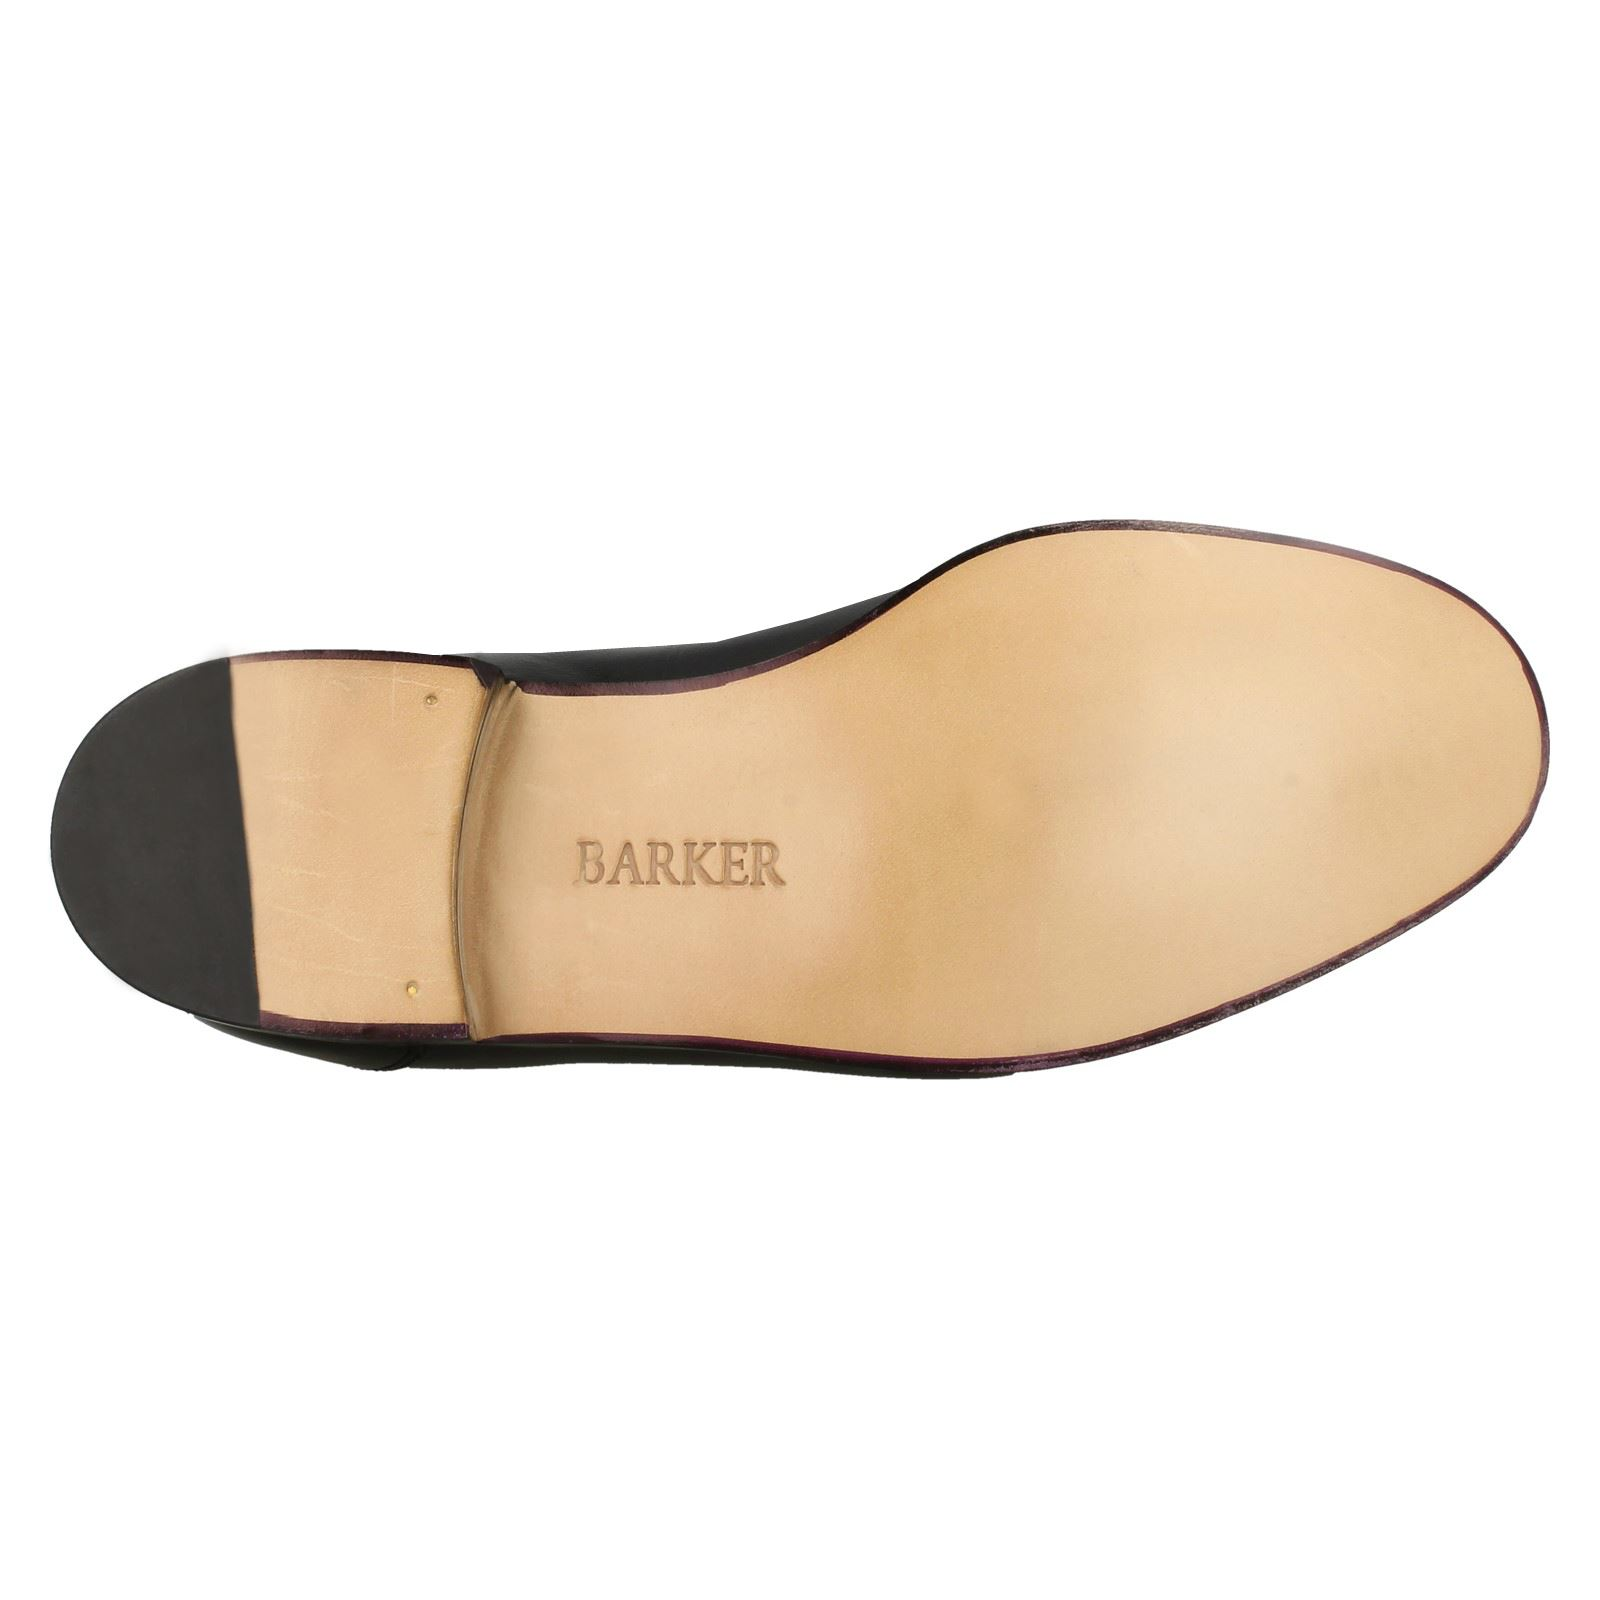 Mens Barker Smart Loafers Loafers Loafers 'Wade' d83aa8